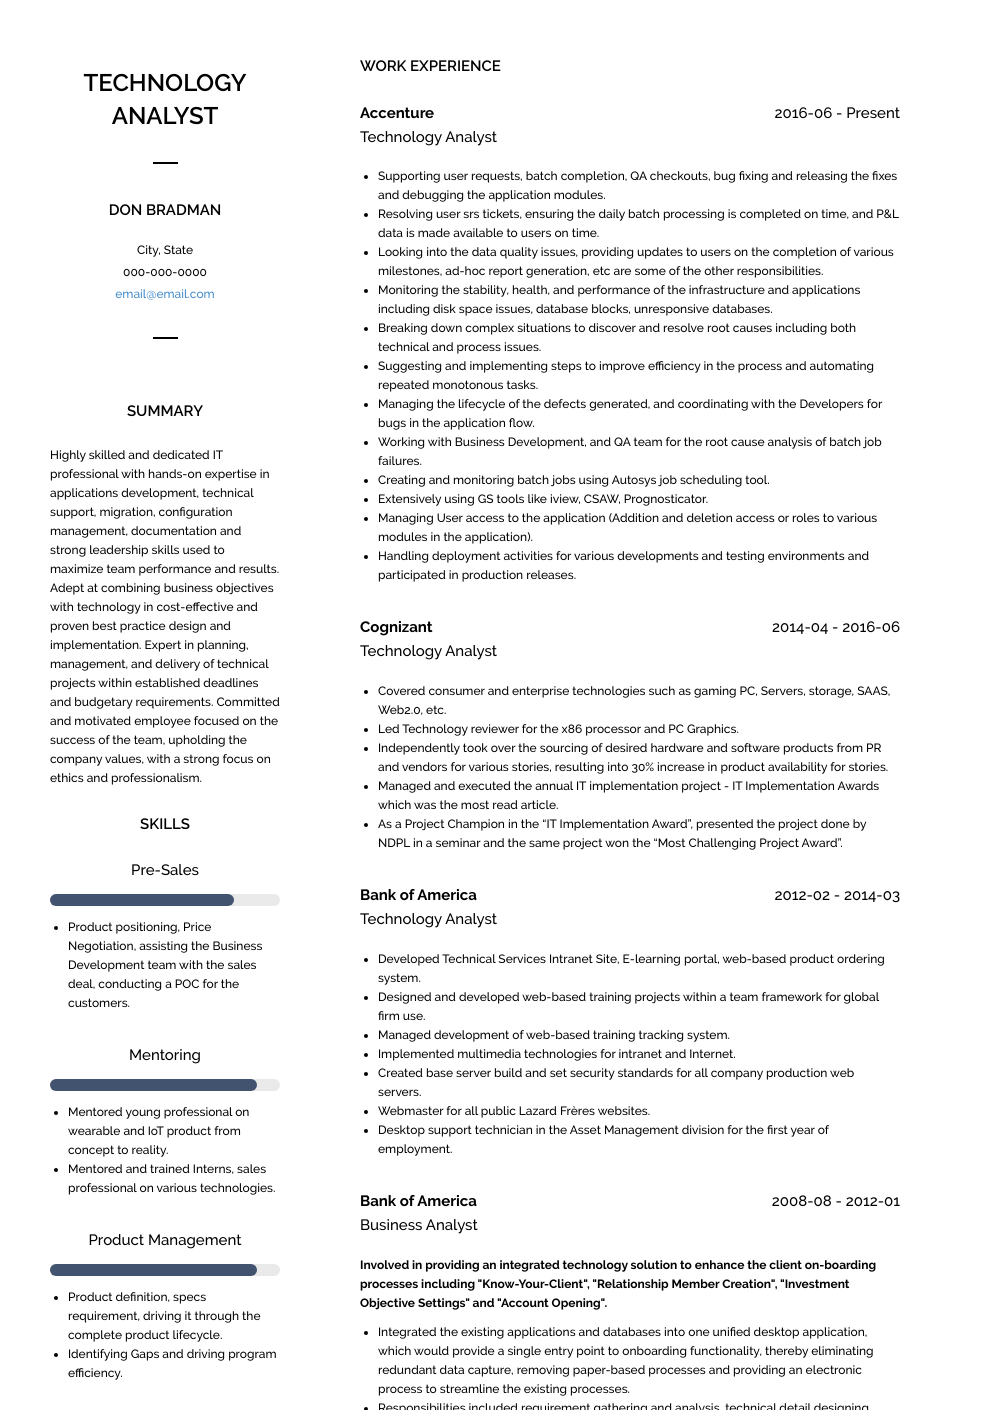 technology analyst